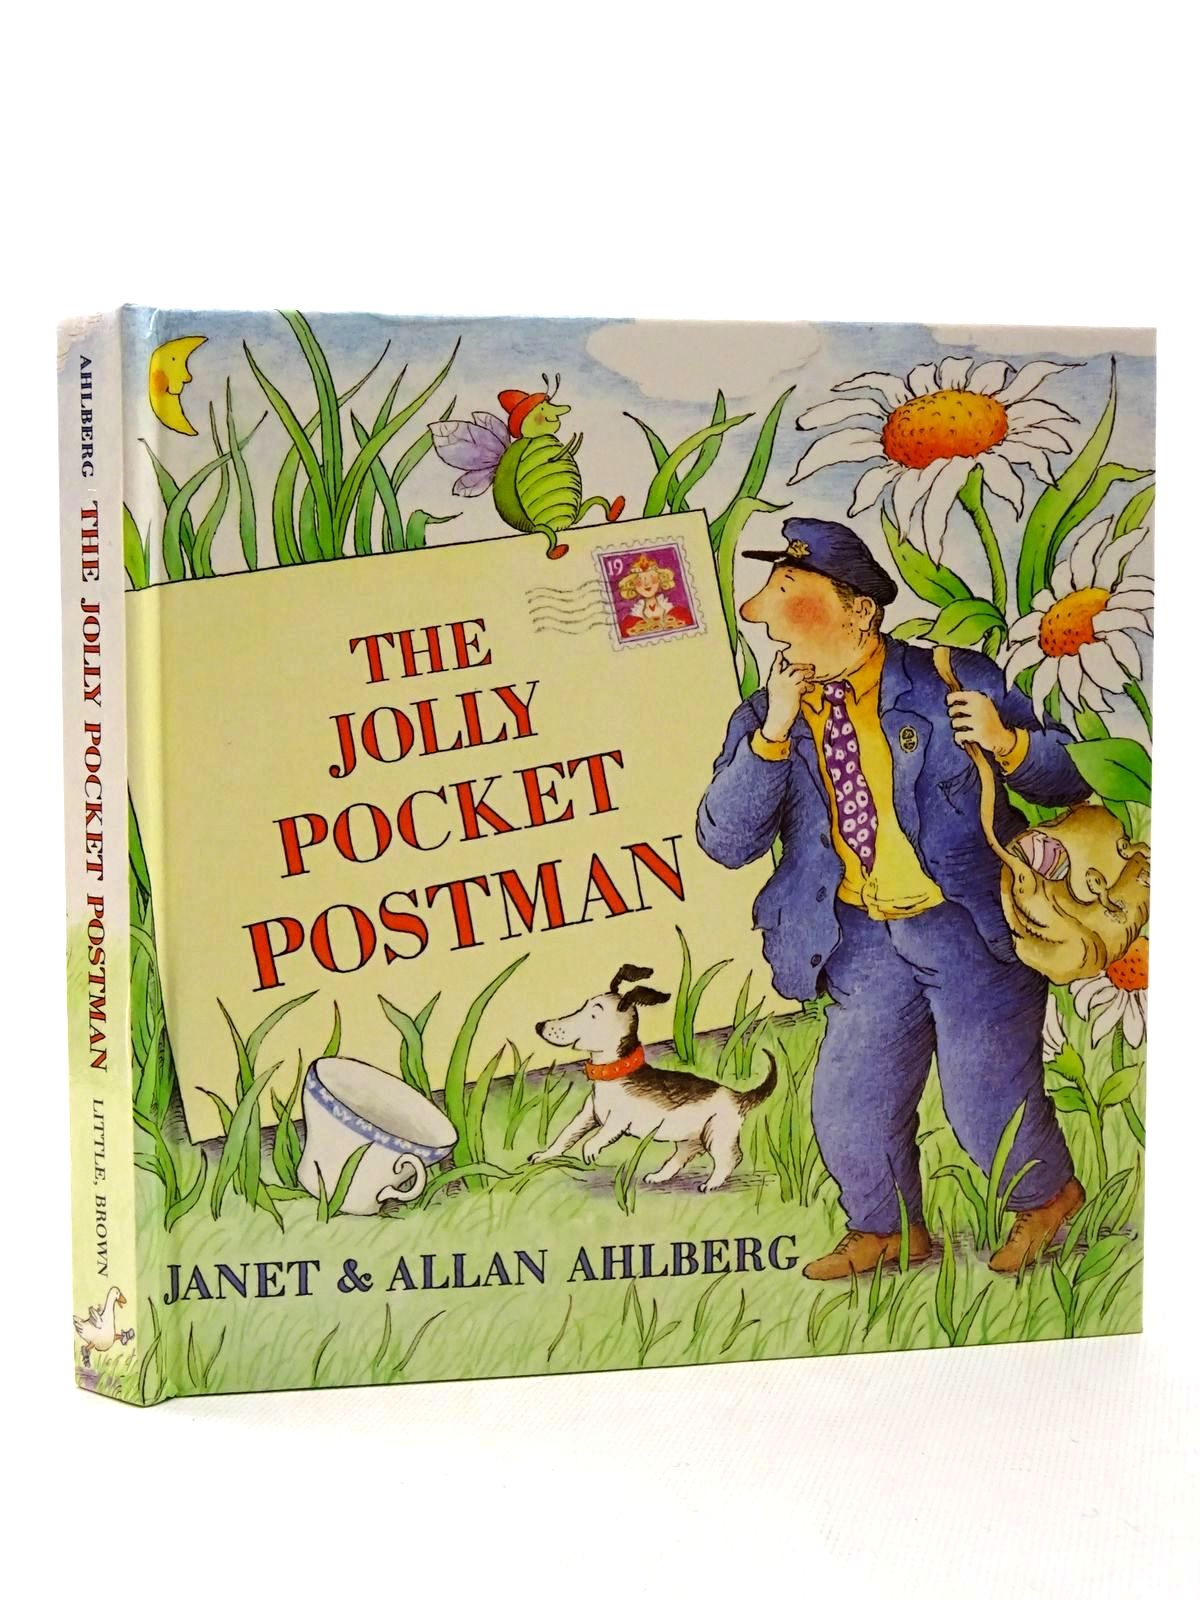 Photo of THE JOLLY POCKET POSTMAN- Stock Number: 2124373